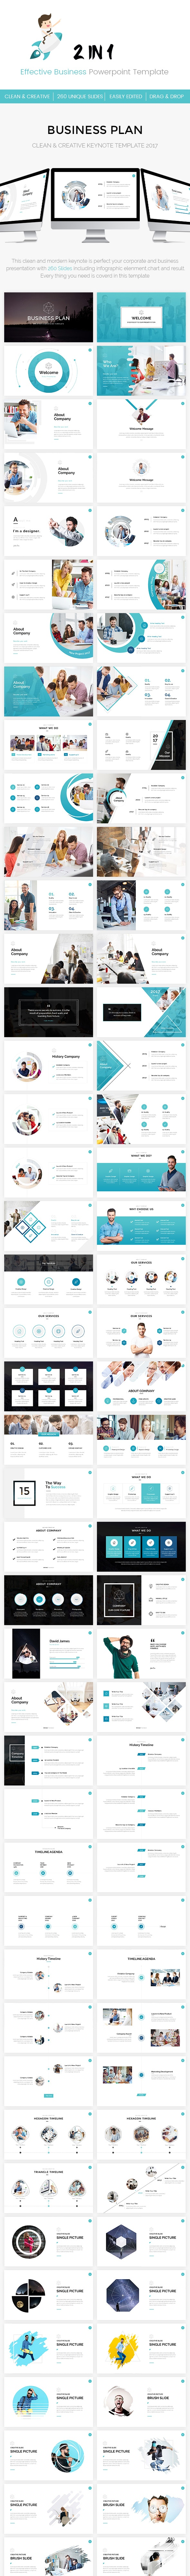 Bundle 2 in 1 Effective Business KeynoteTemplate - Business PowerPoint Templates